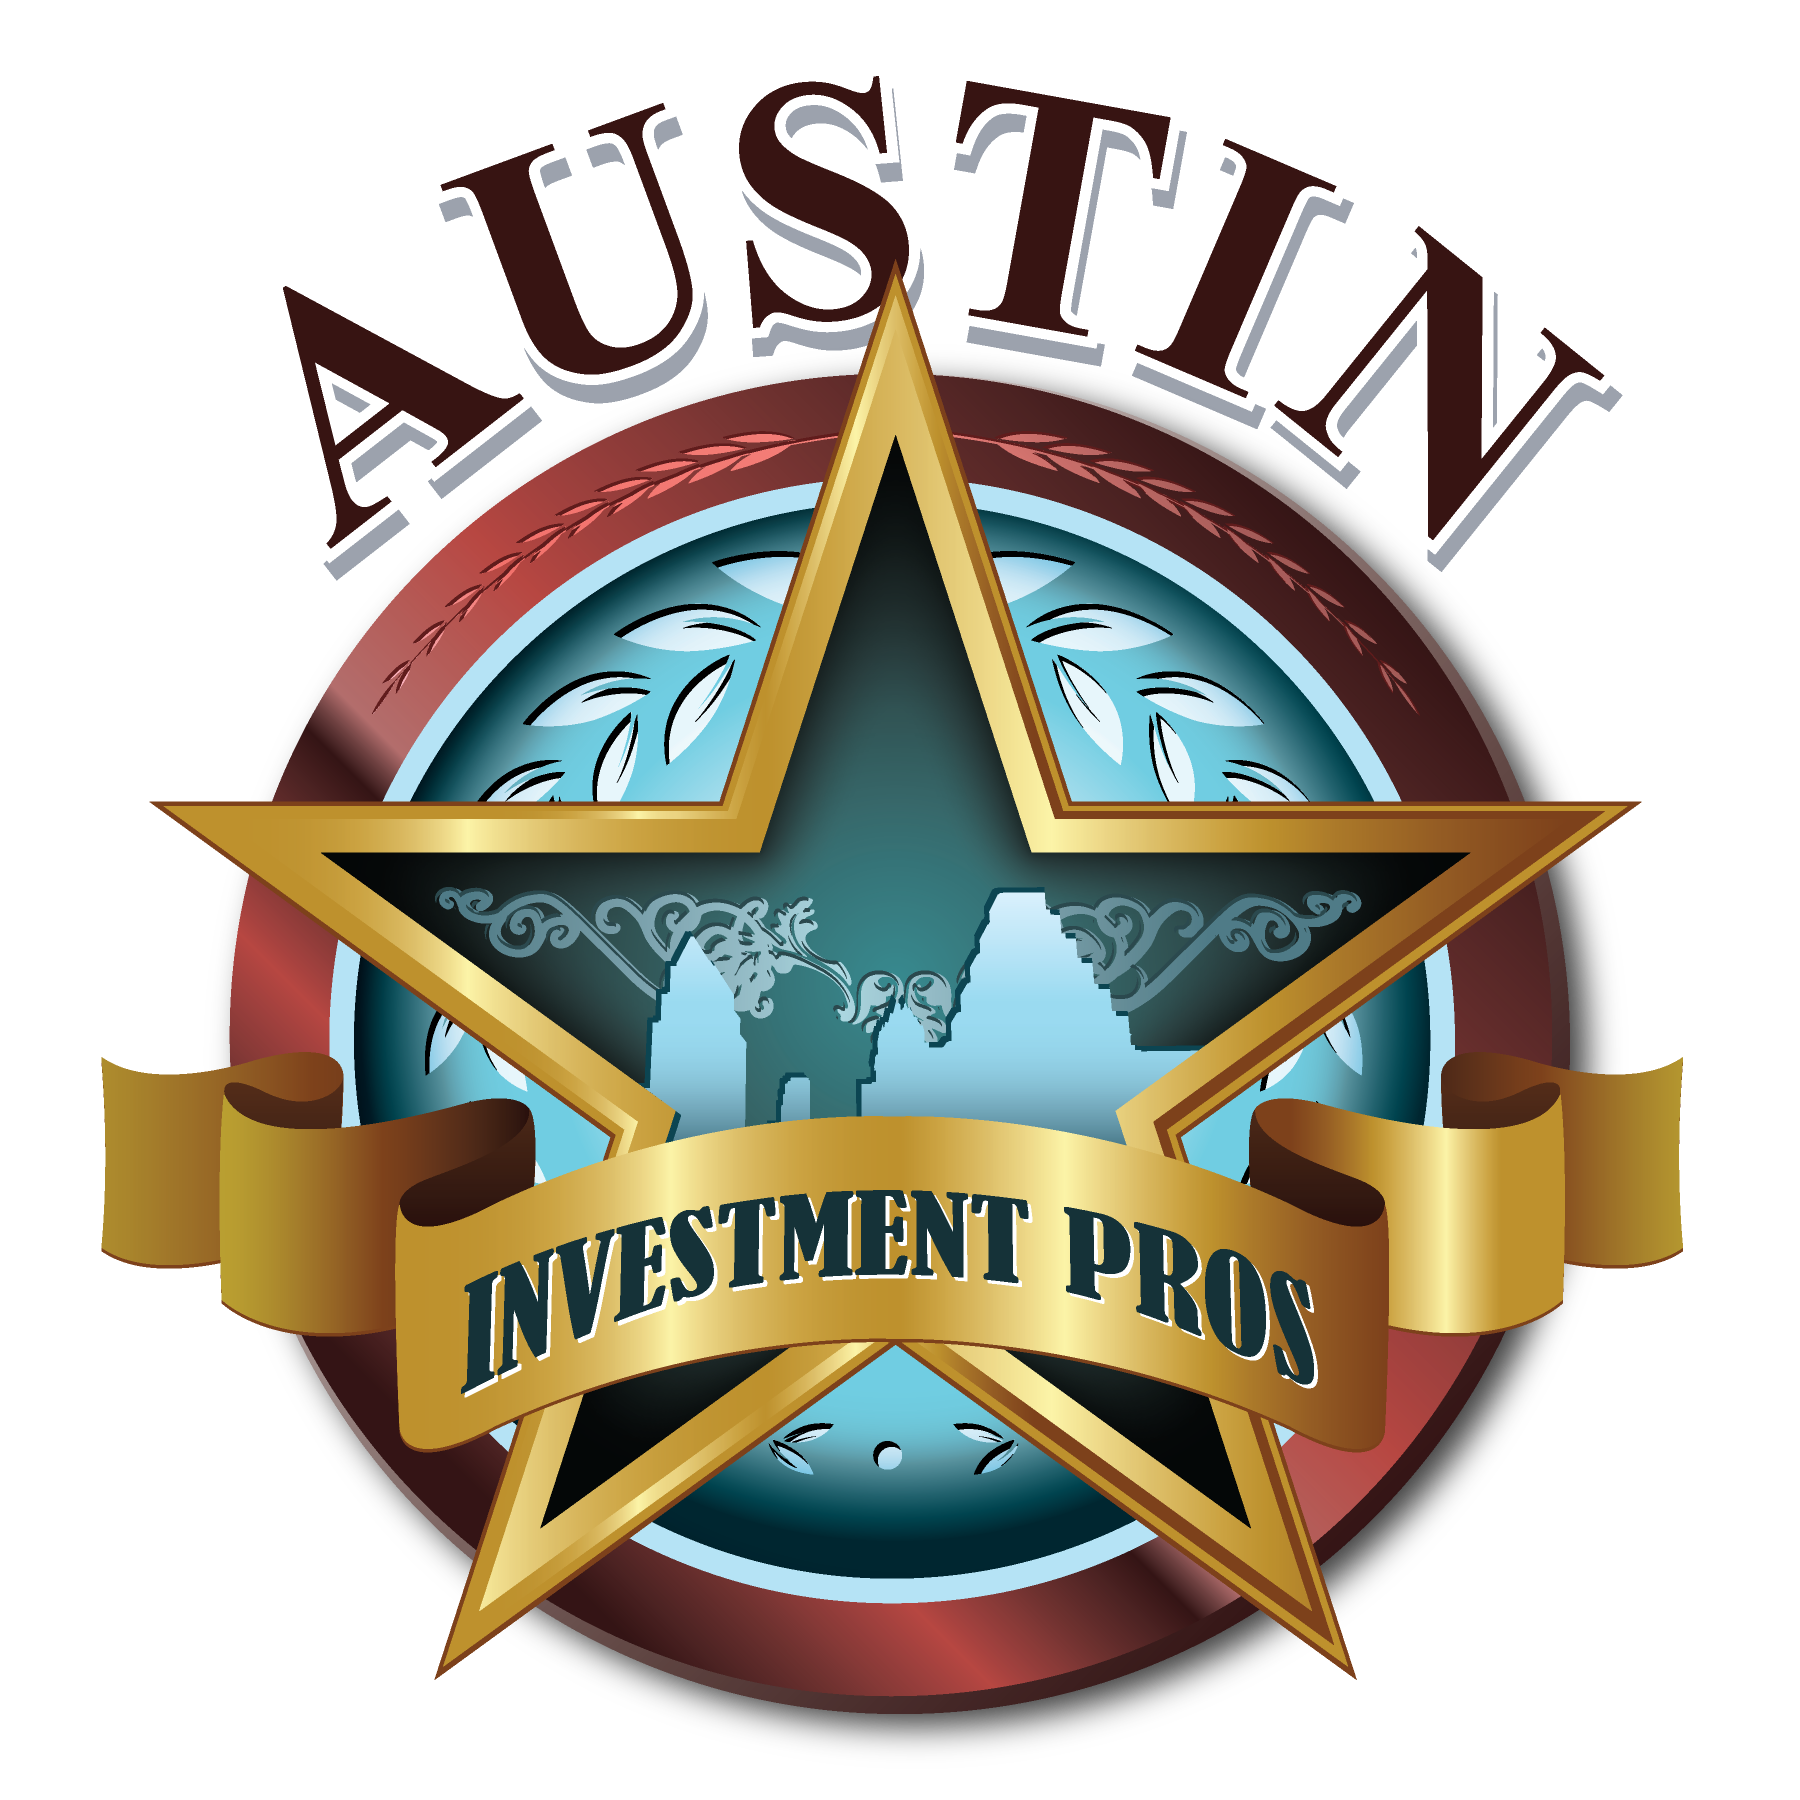 Austin's Investment Pros LLC